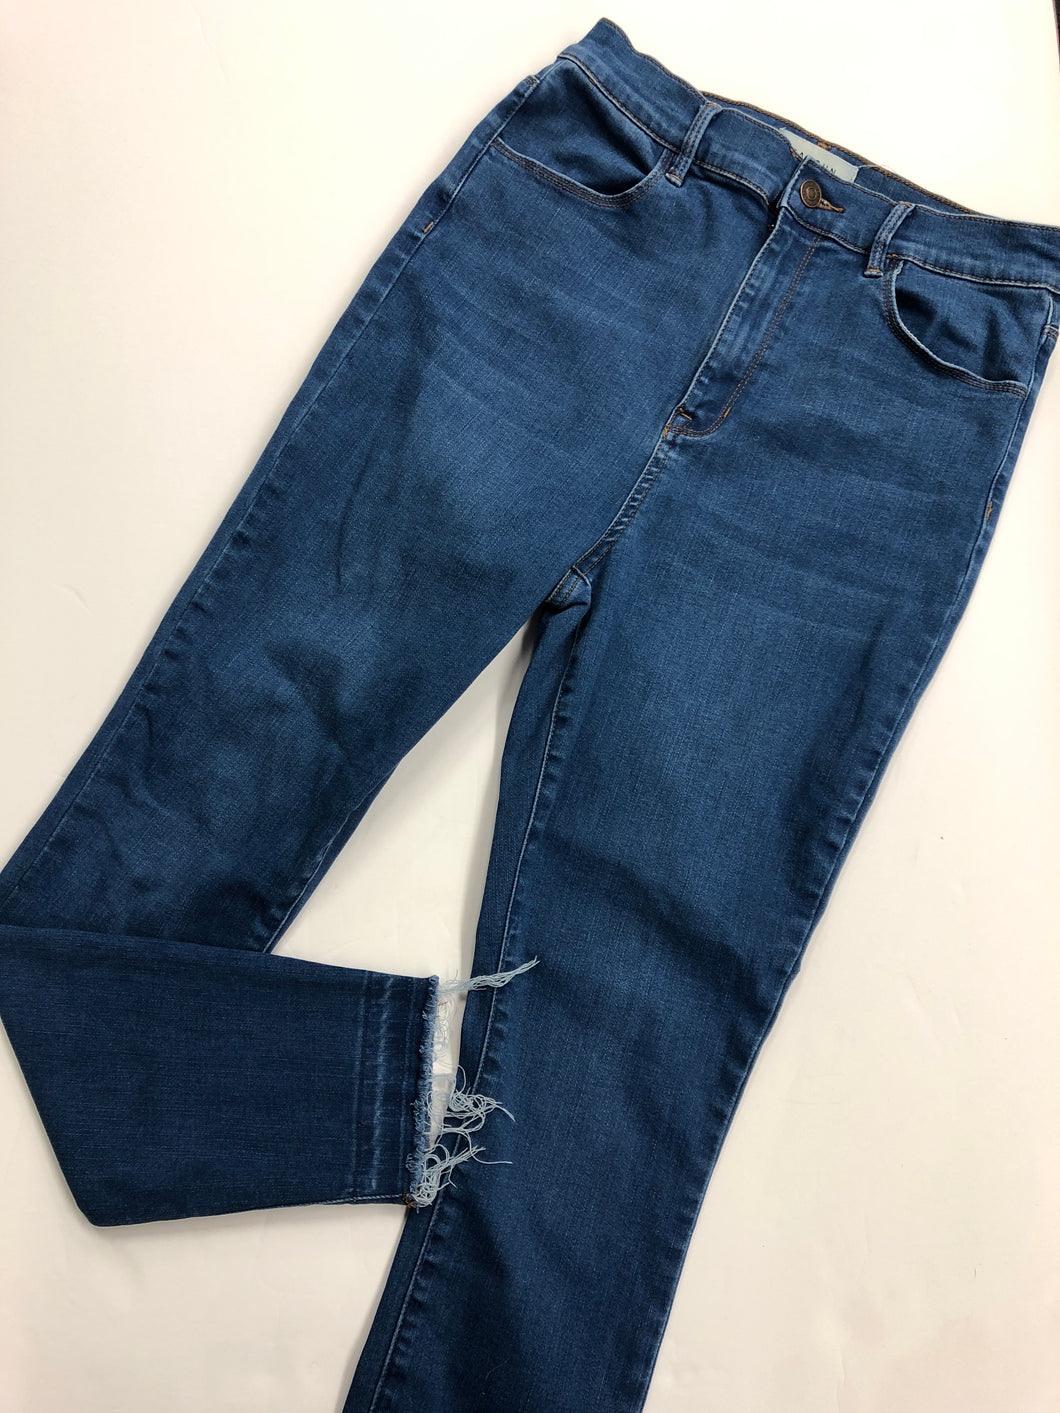 Pac Sun Womens Denim Size 7/8 (29)